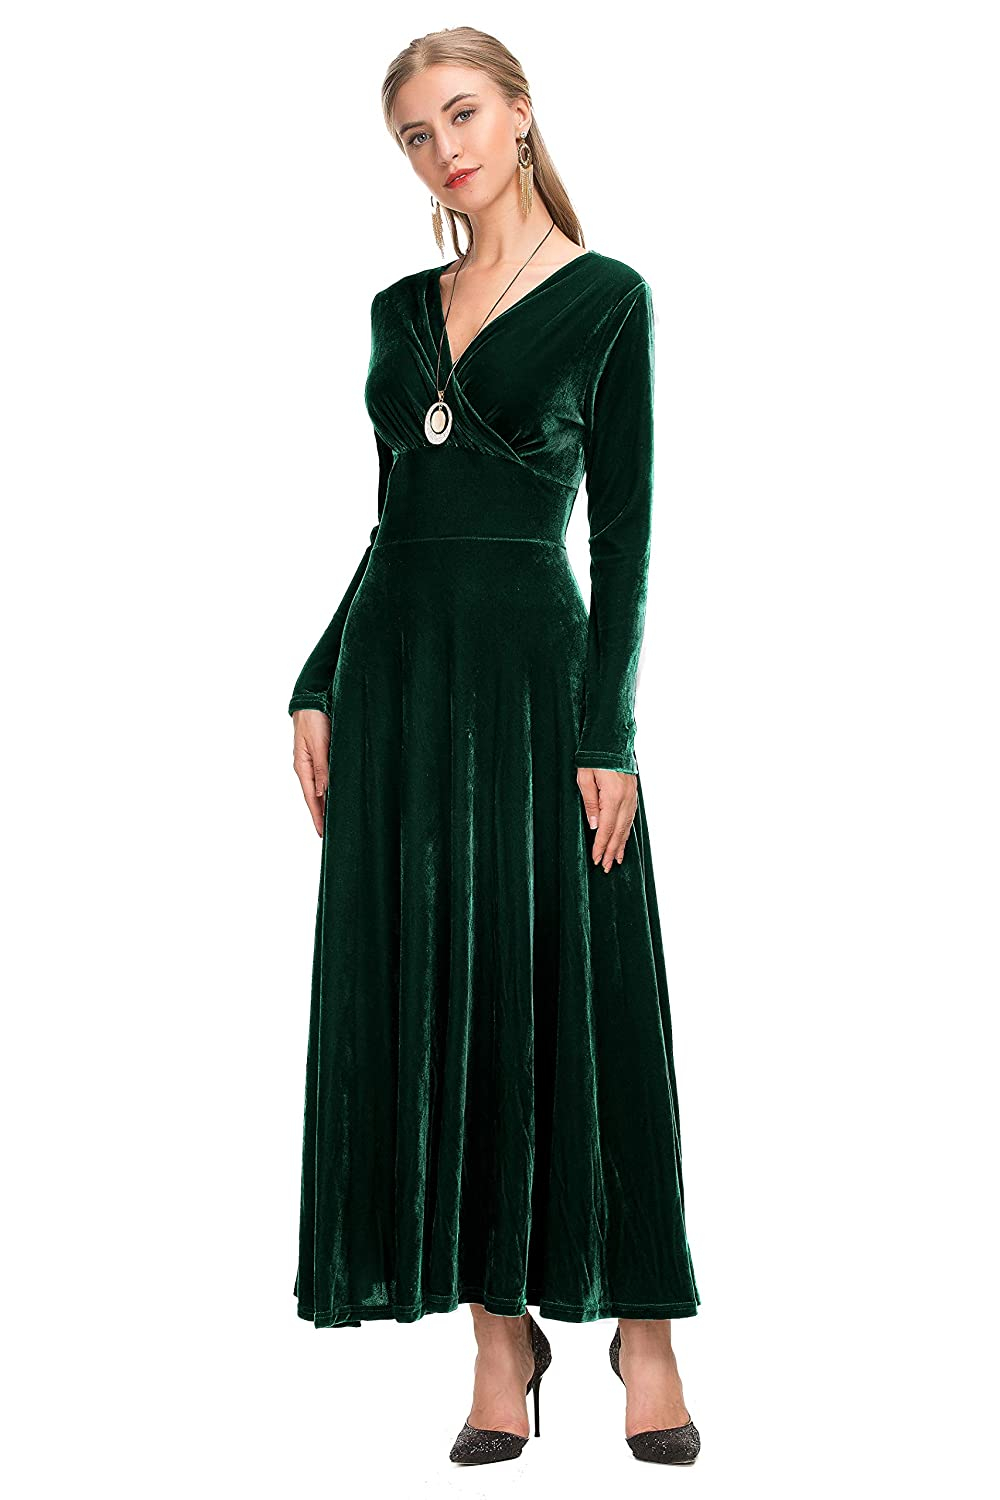 add23e39b5 Le Vonfort Women s Vintage Velvet Scoop Neck Vneck Long Sleeve Swing A Line  Maxi Dress at Amazon Women s Clothing store